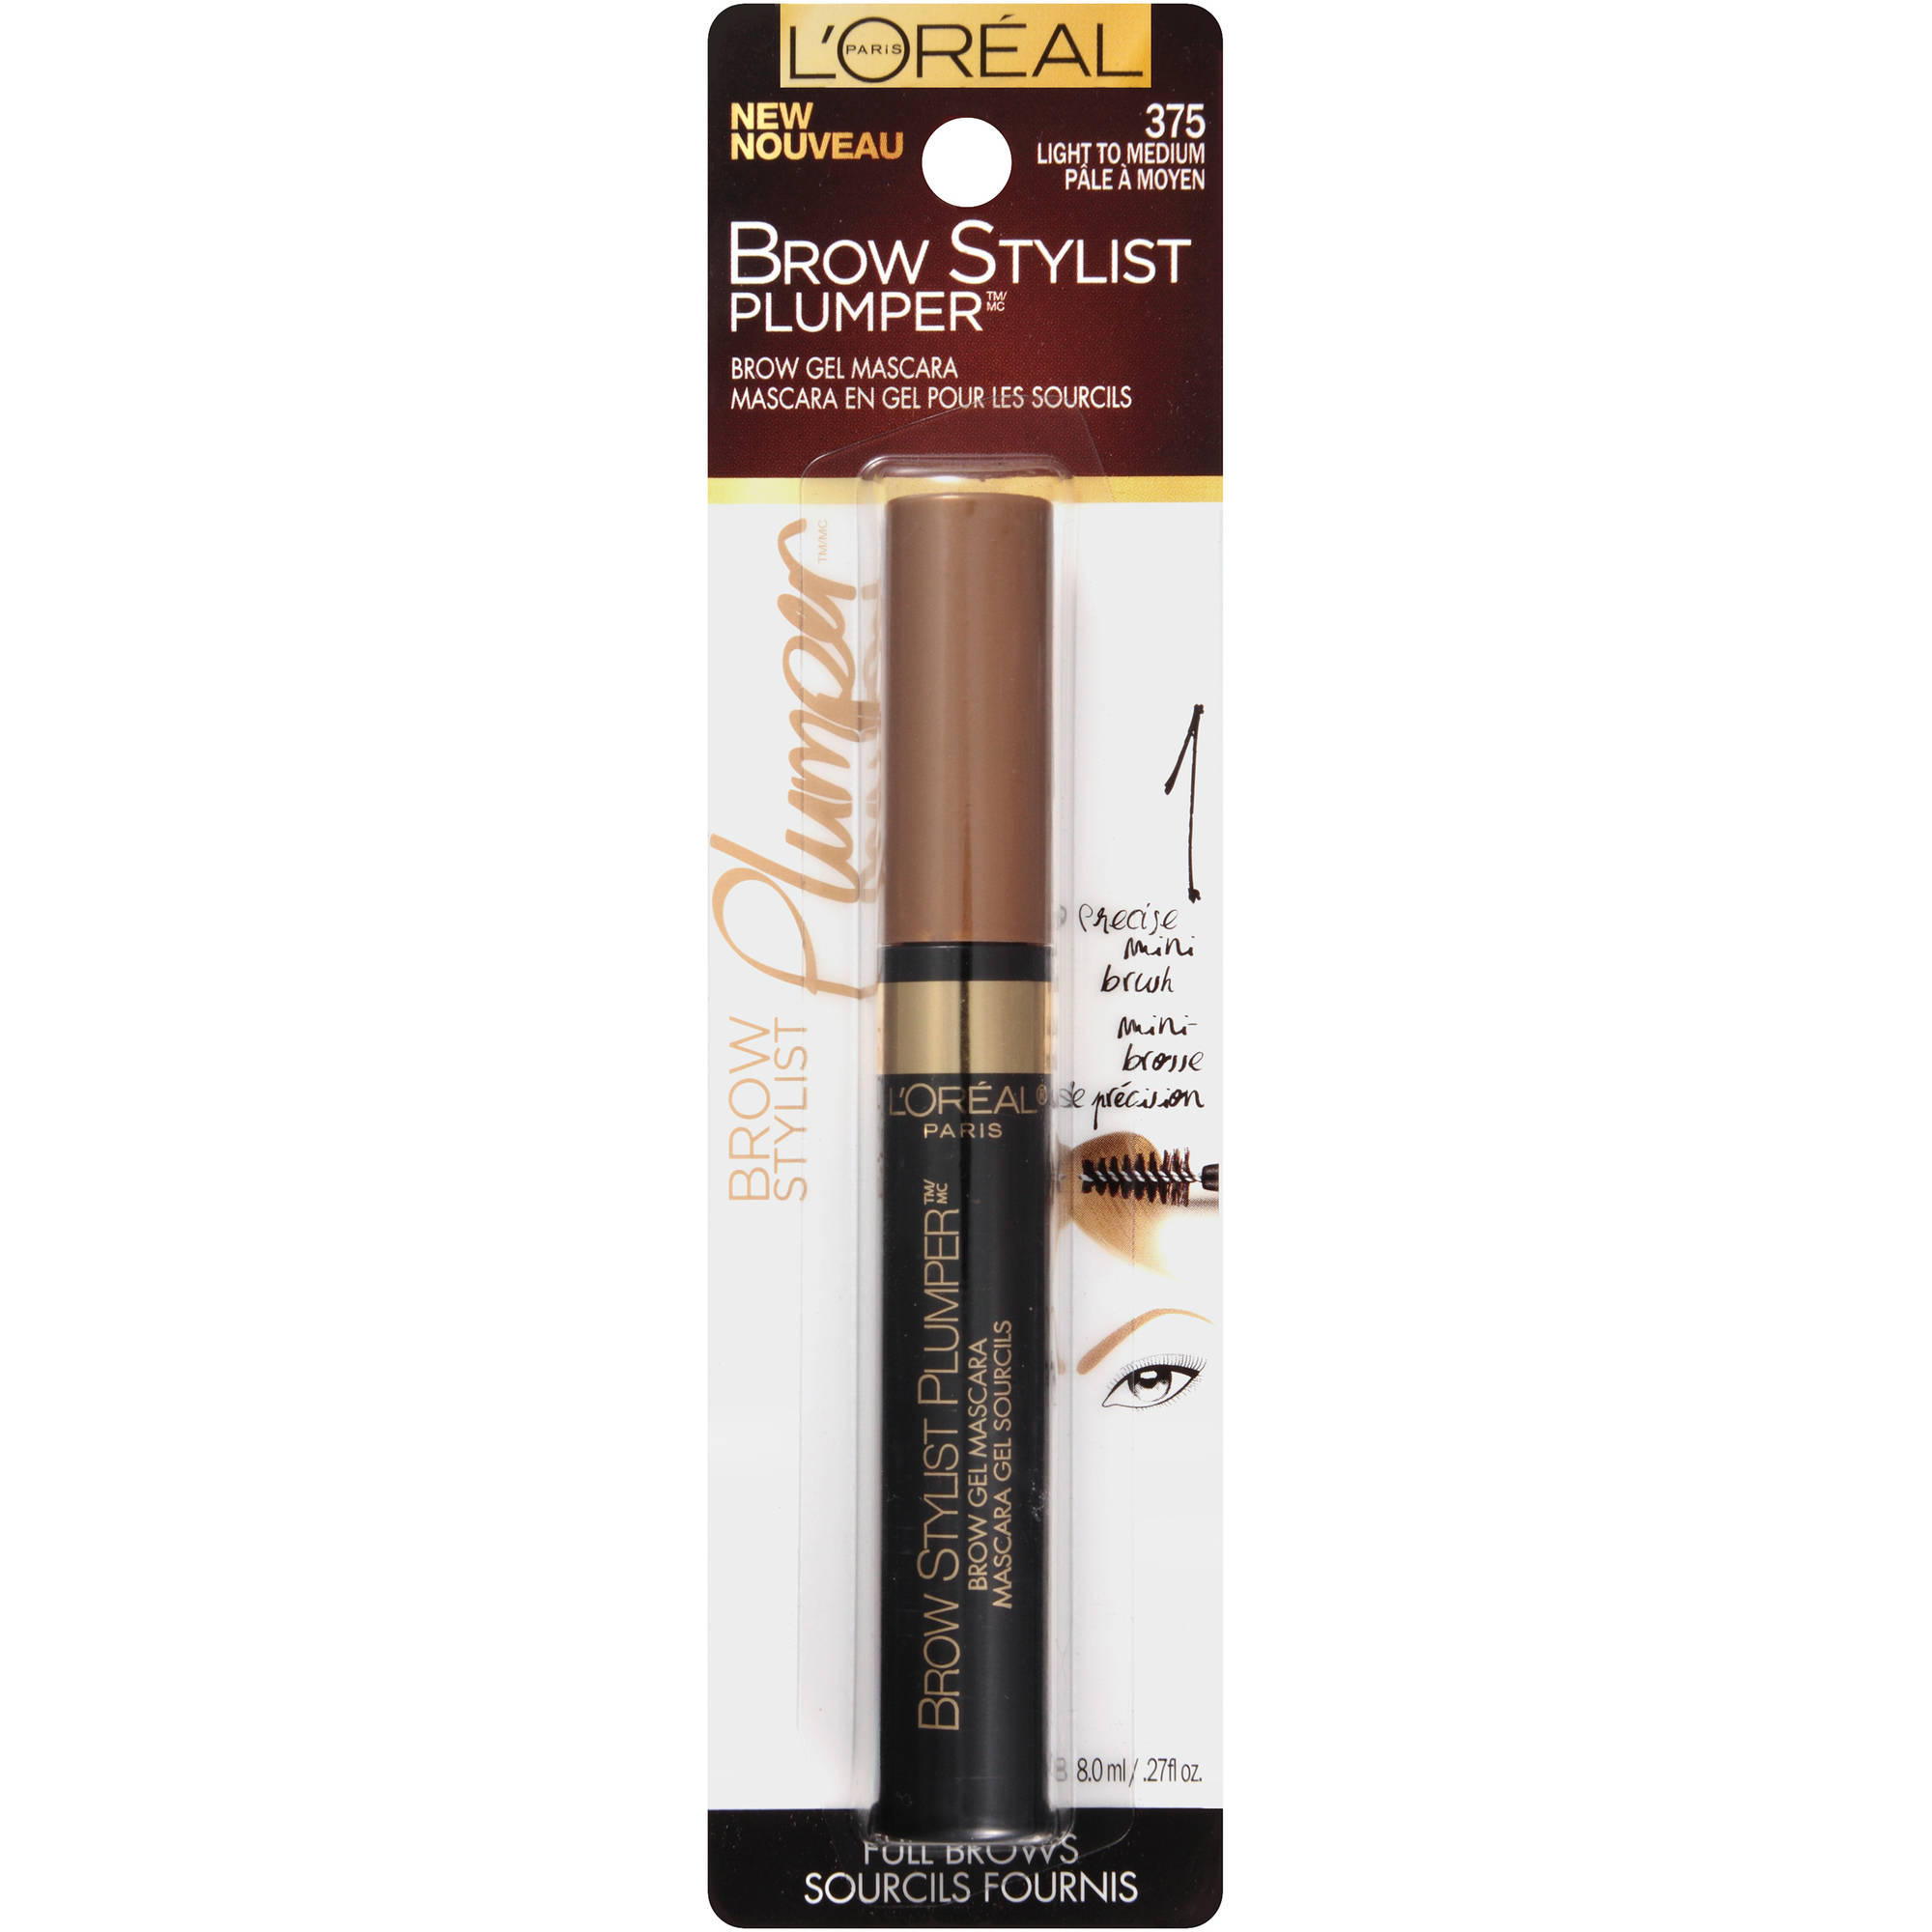 L'Oreal Paris Brow Stylist Brow Plumper, Light to Medium